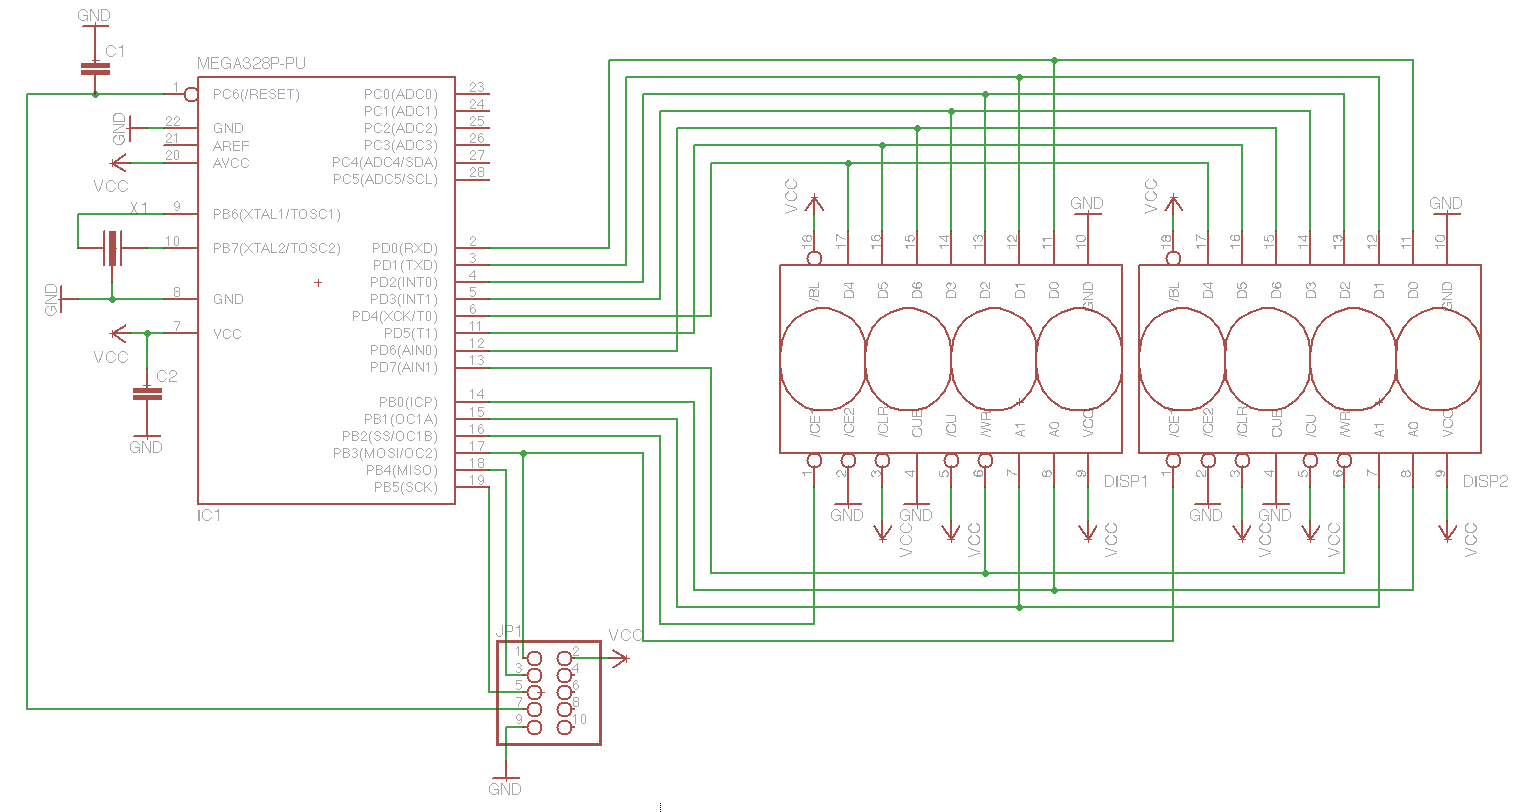 Using Dl2416 Intelligent 16 Segment Led Displays With Avr Display Circuit Diagram As You Can See These Are From Pre Spi Era And Need A Lot Of I O Even In Very Minimal Configuration Without Cursors Flashing